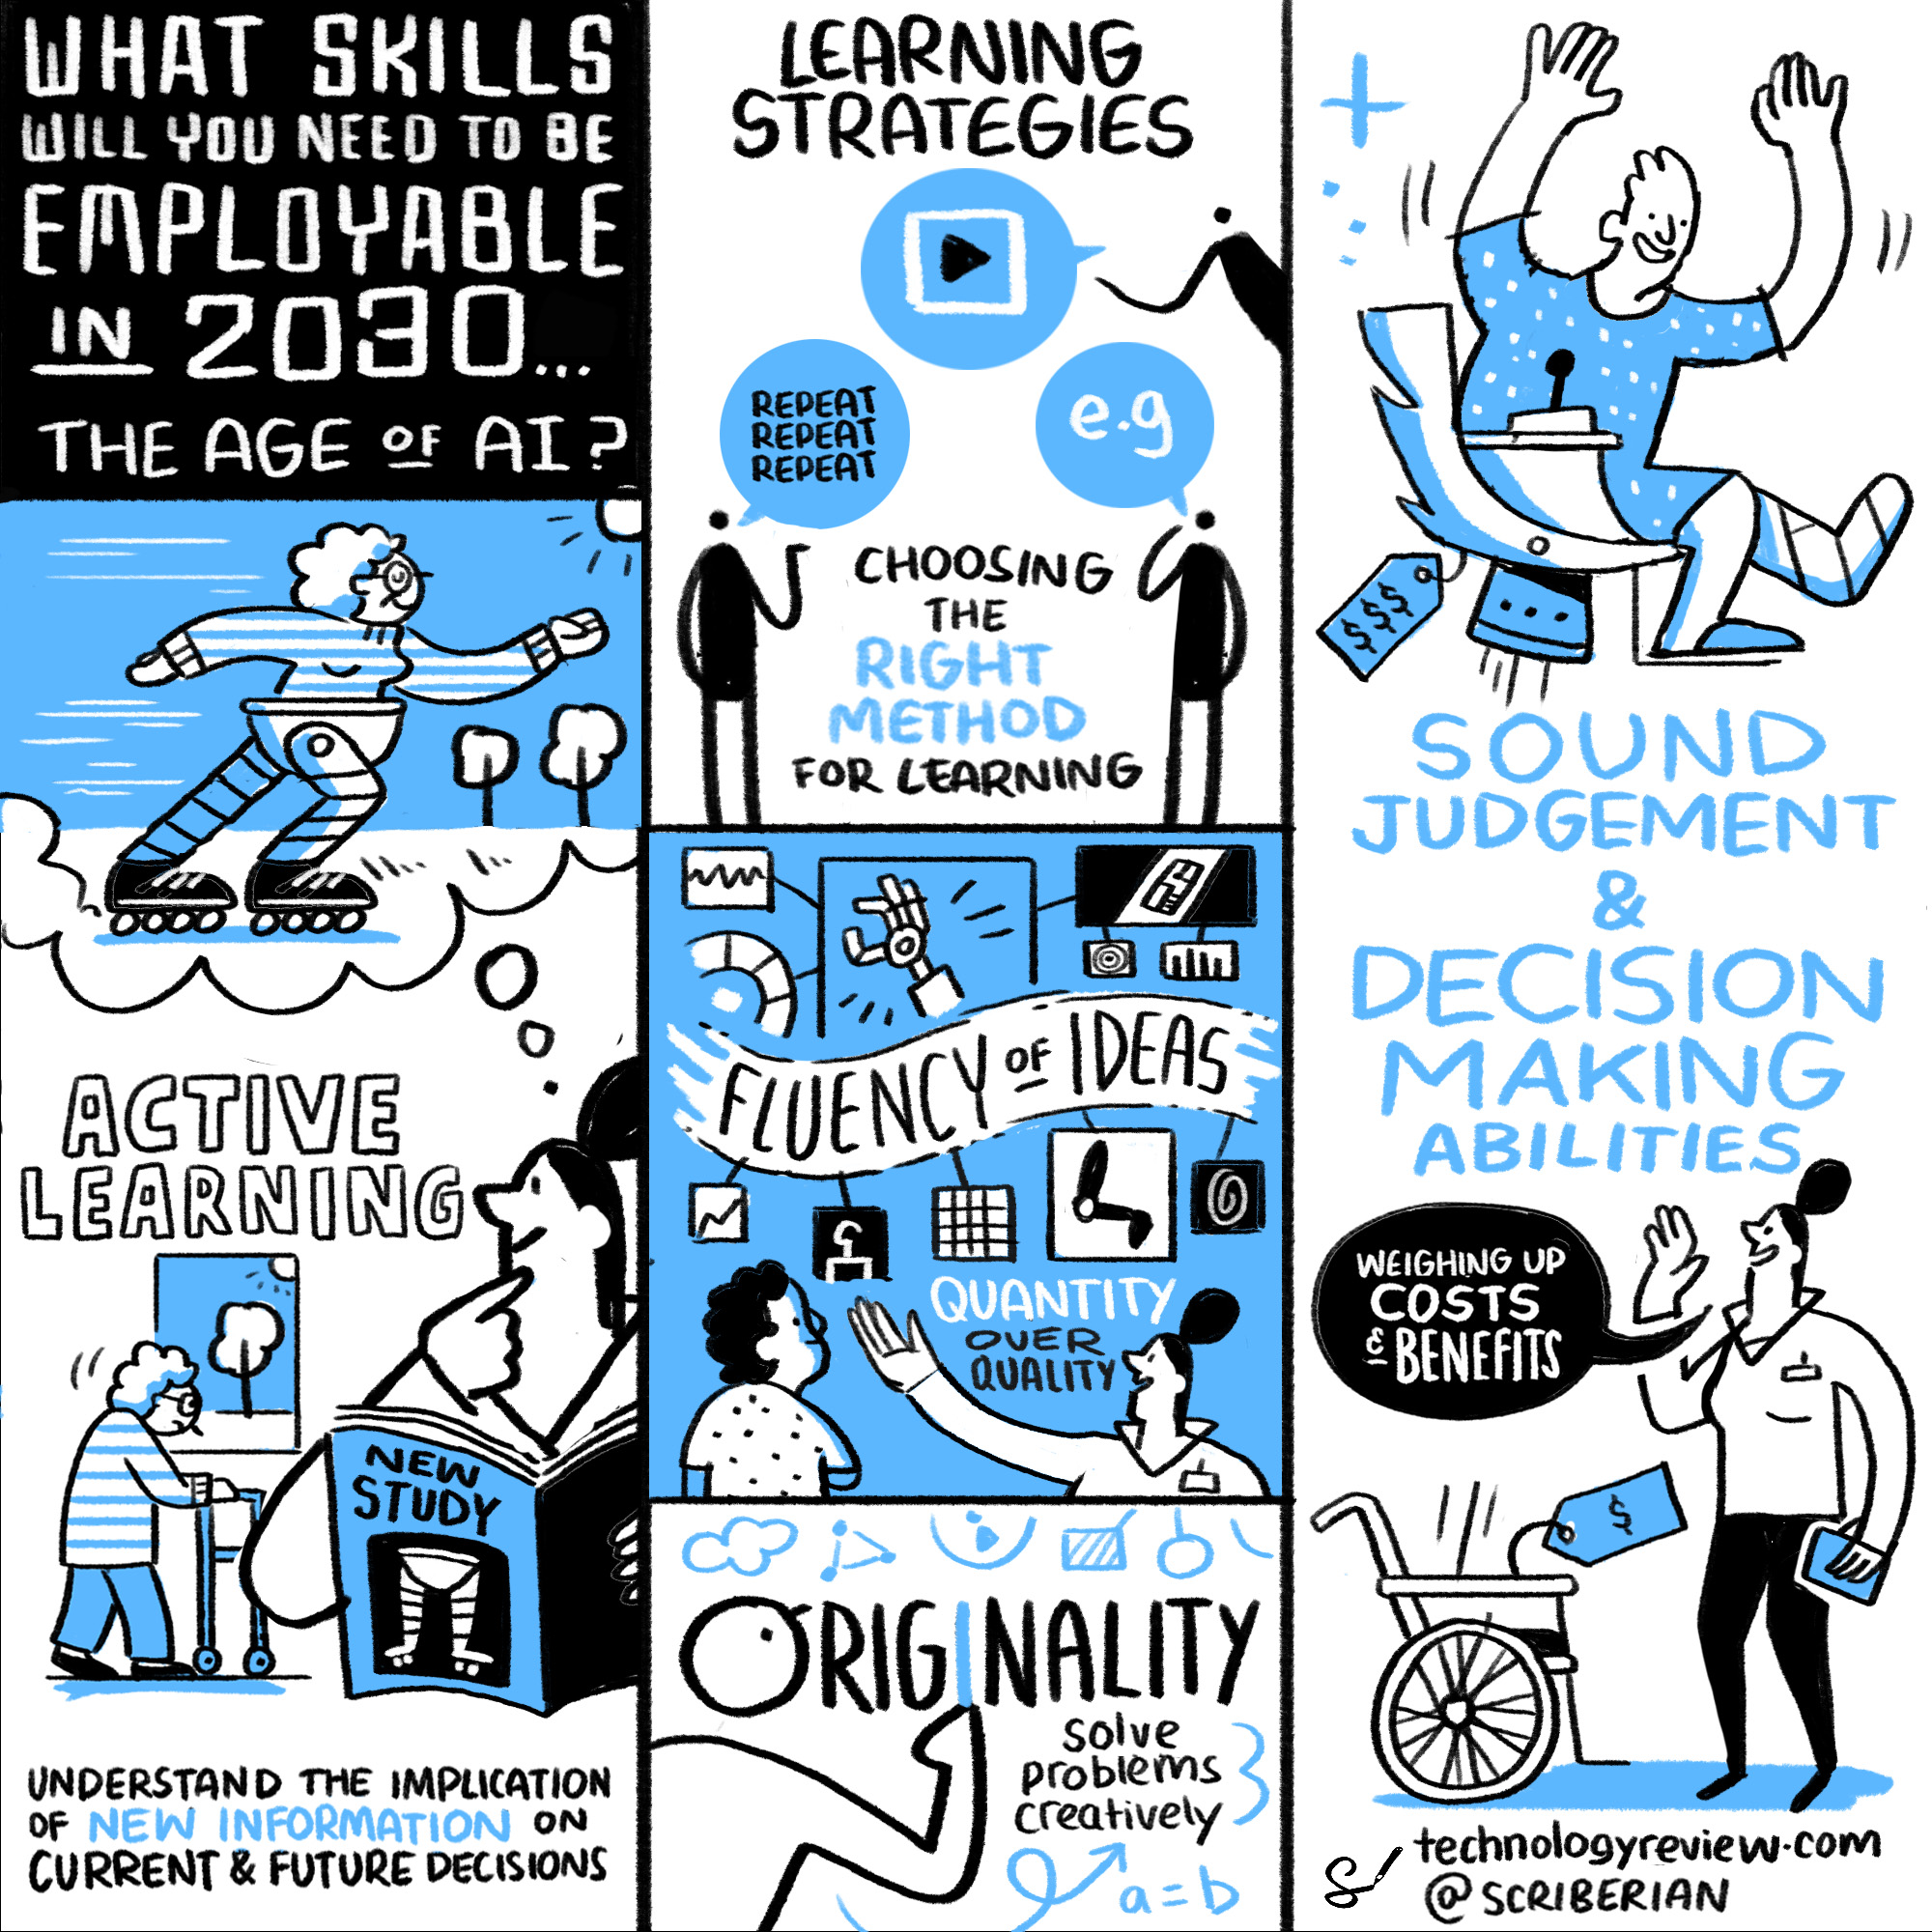 What skills will you need to be employable in 2030? Source:  MIT Technology Review